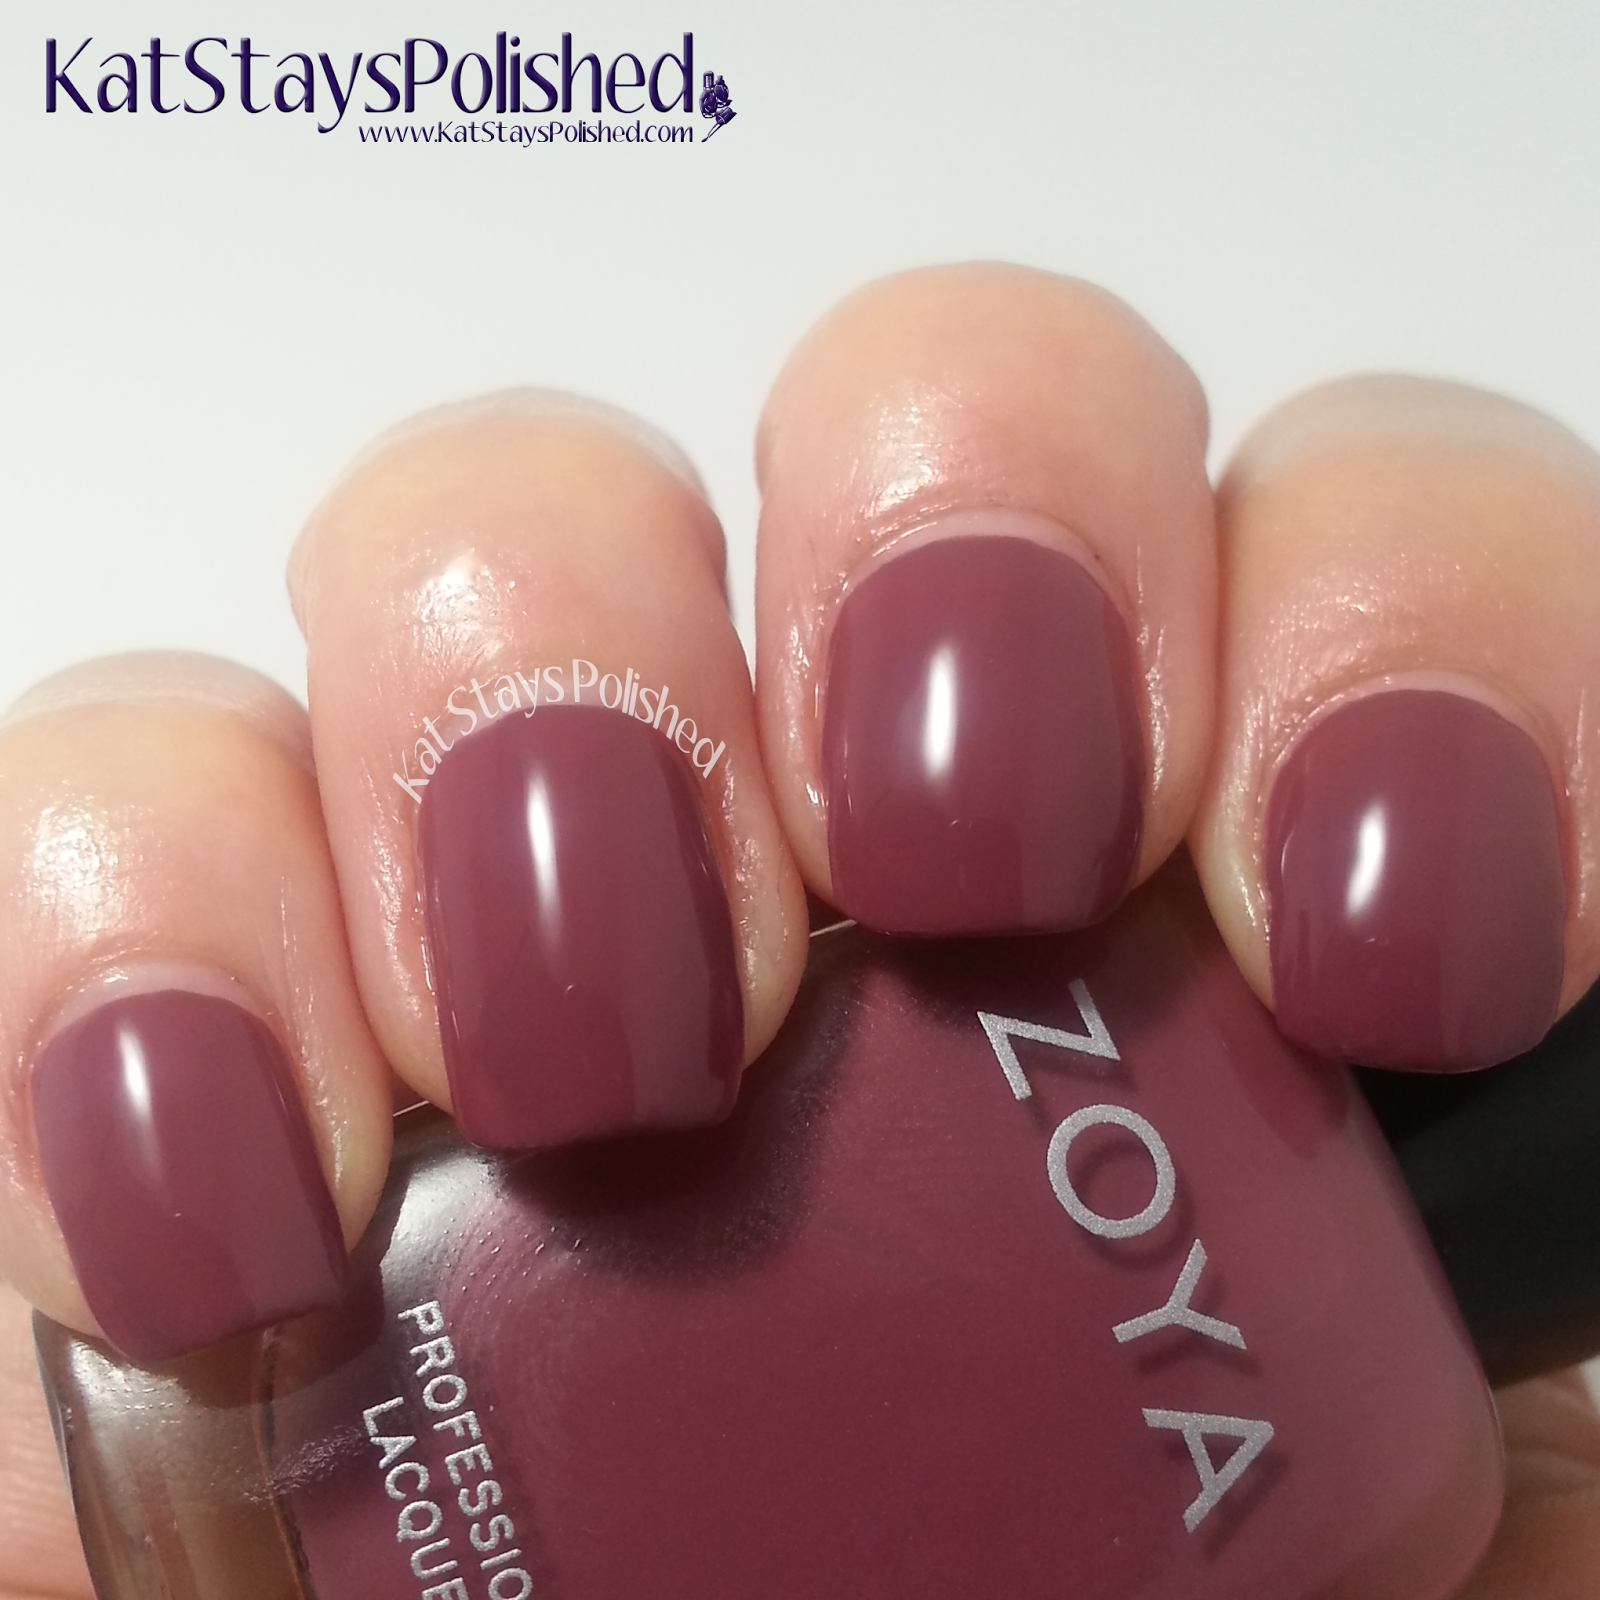 Zoya Naturel Deux - Aubrey | Kat Stays Polished